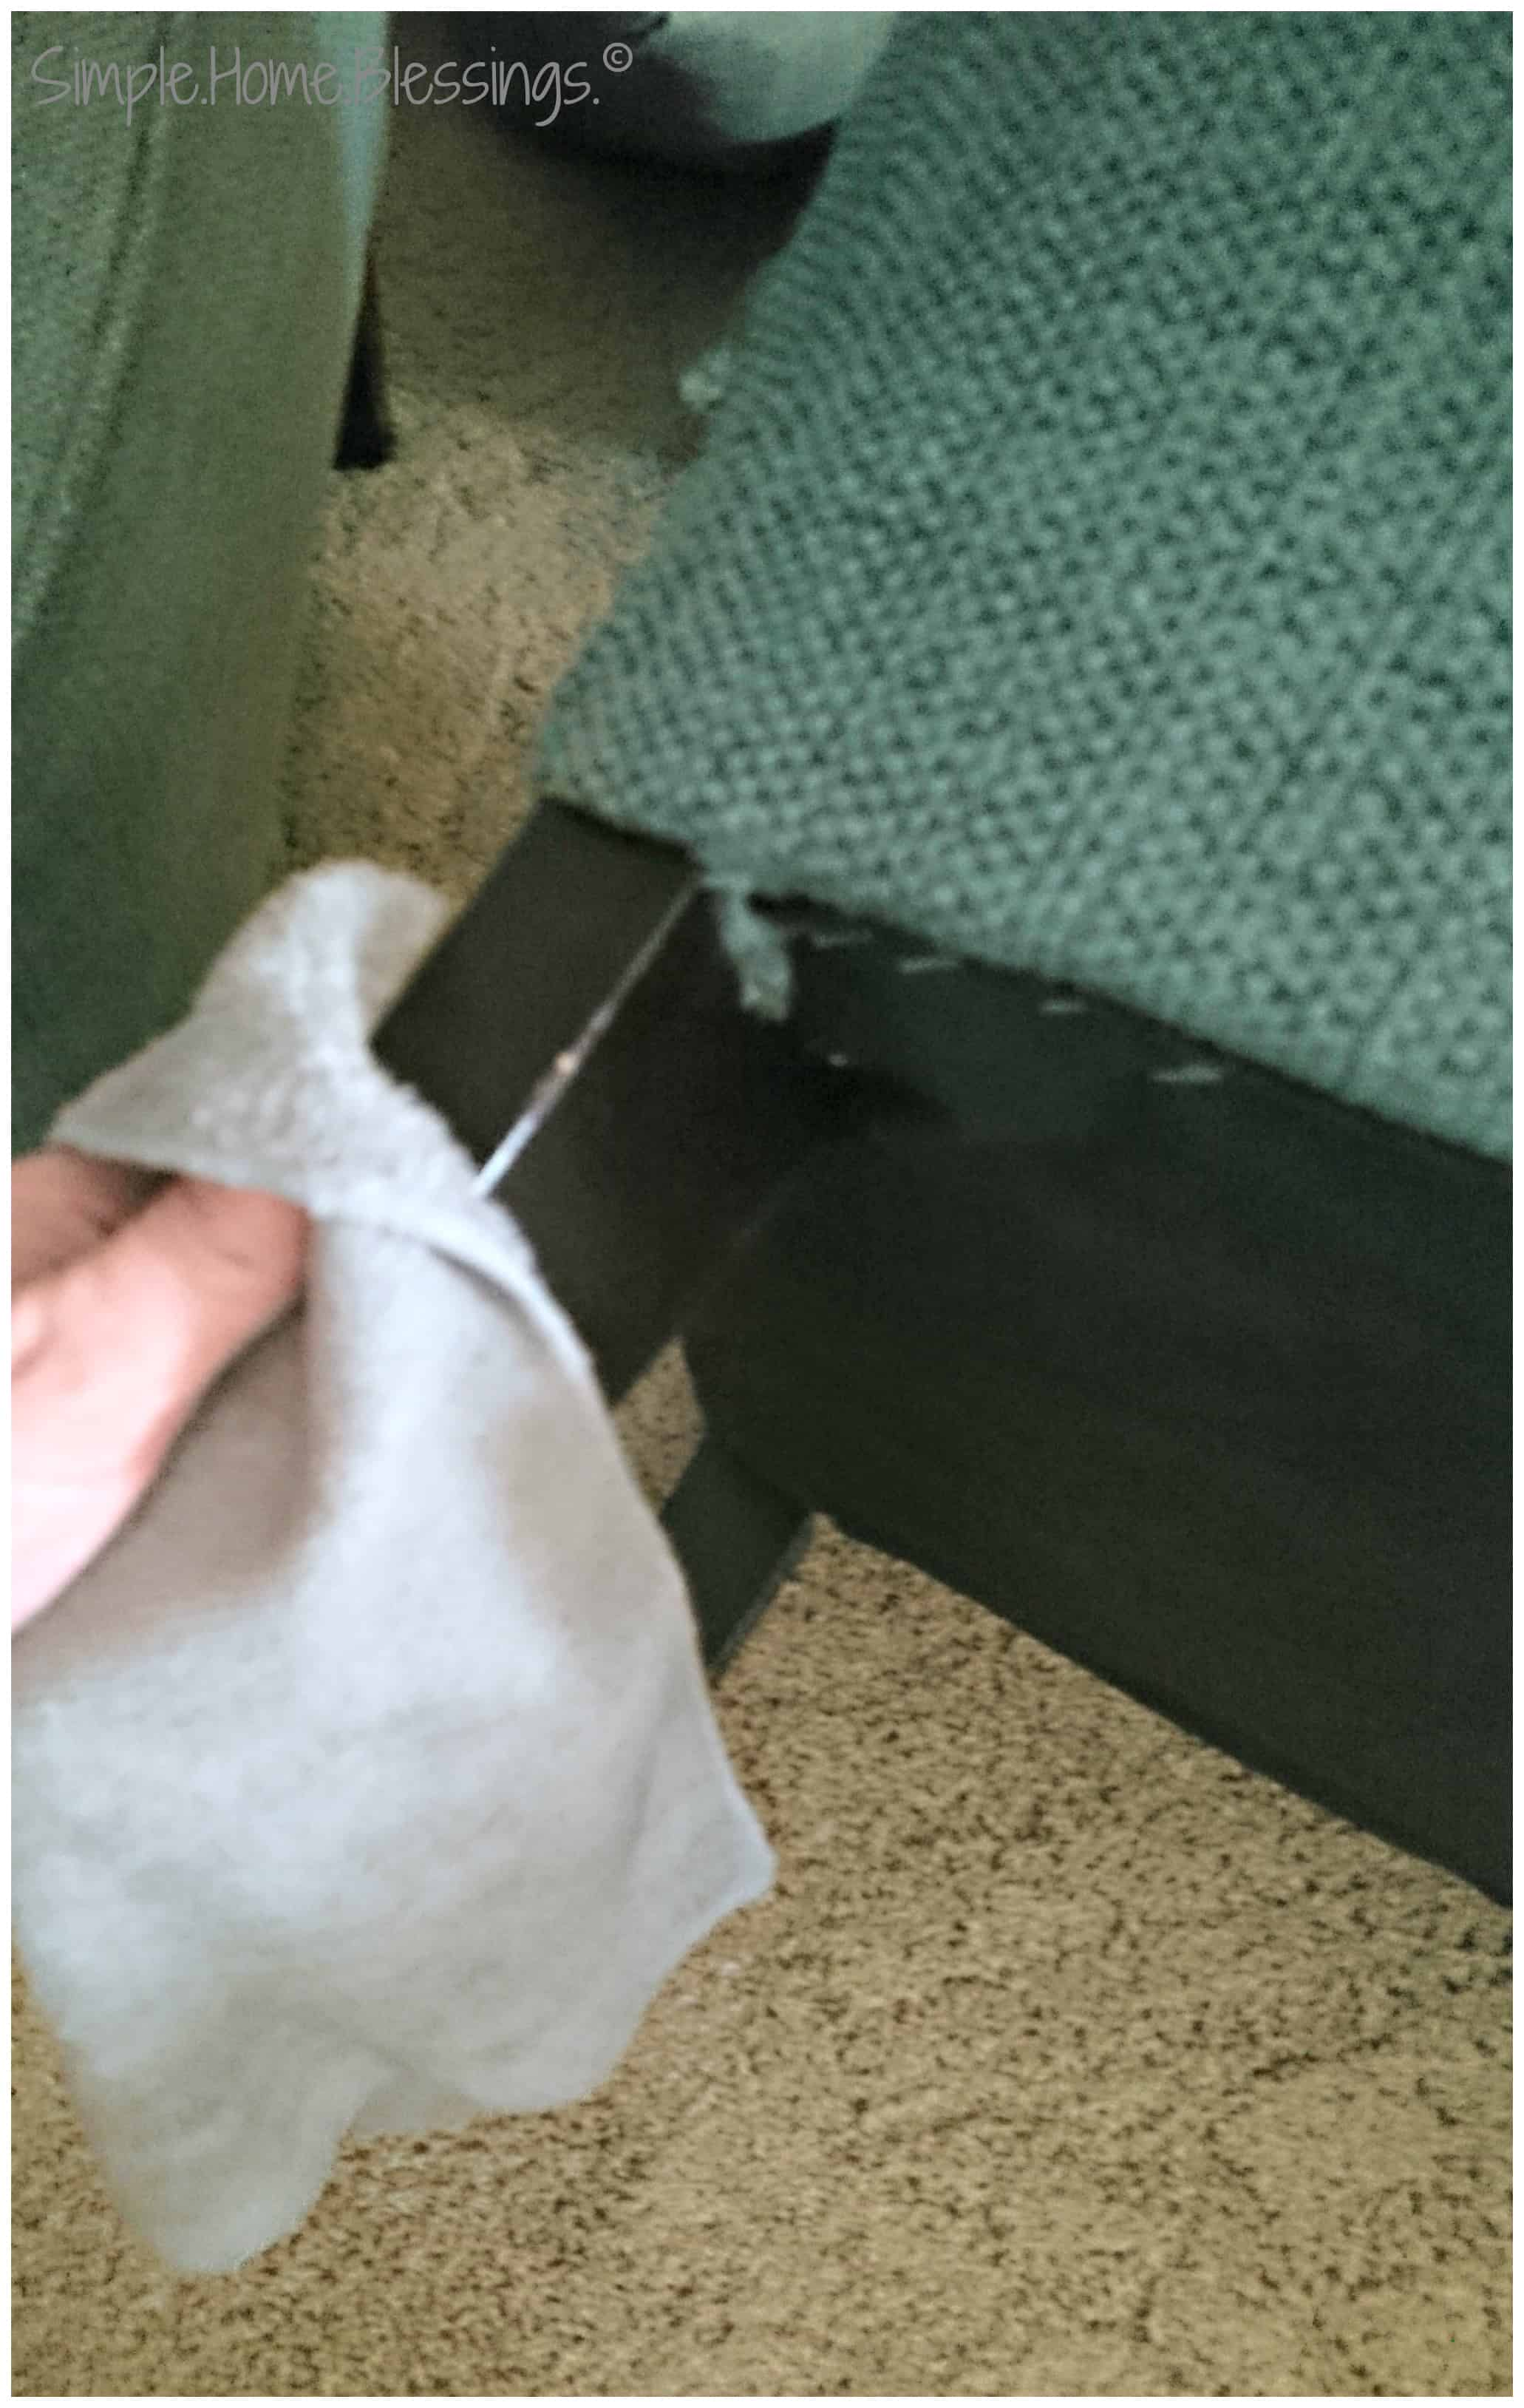 ... Soft Cloth To Dust And Condition The Legs Of The Chair/sofa. Get All  Sides Of The Legs And Make Sure They Are Still Screwed Securely On The  Chair/sofa.